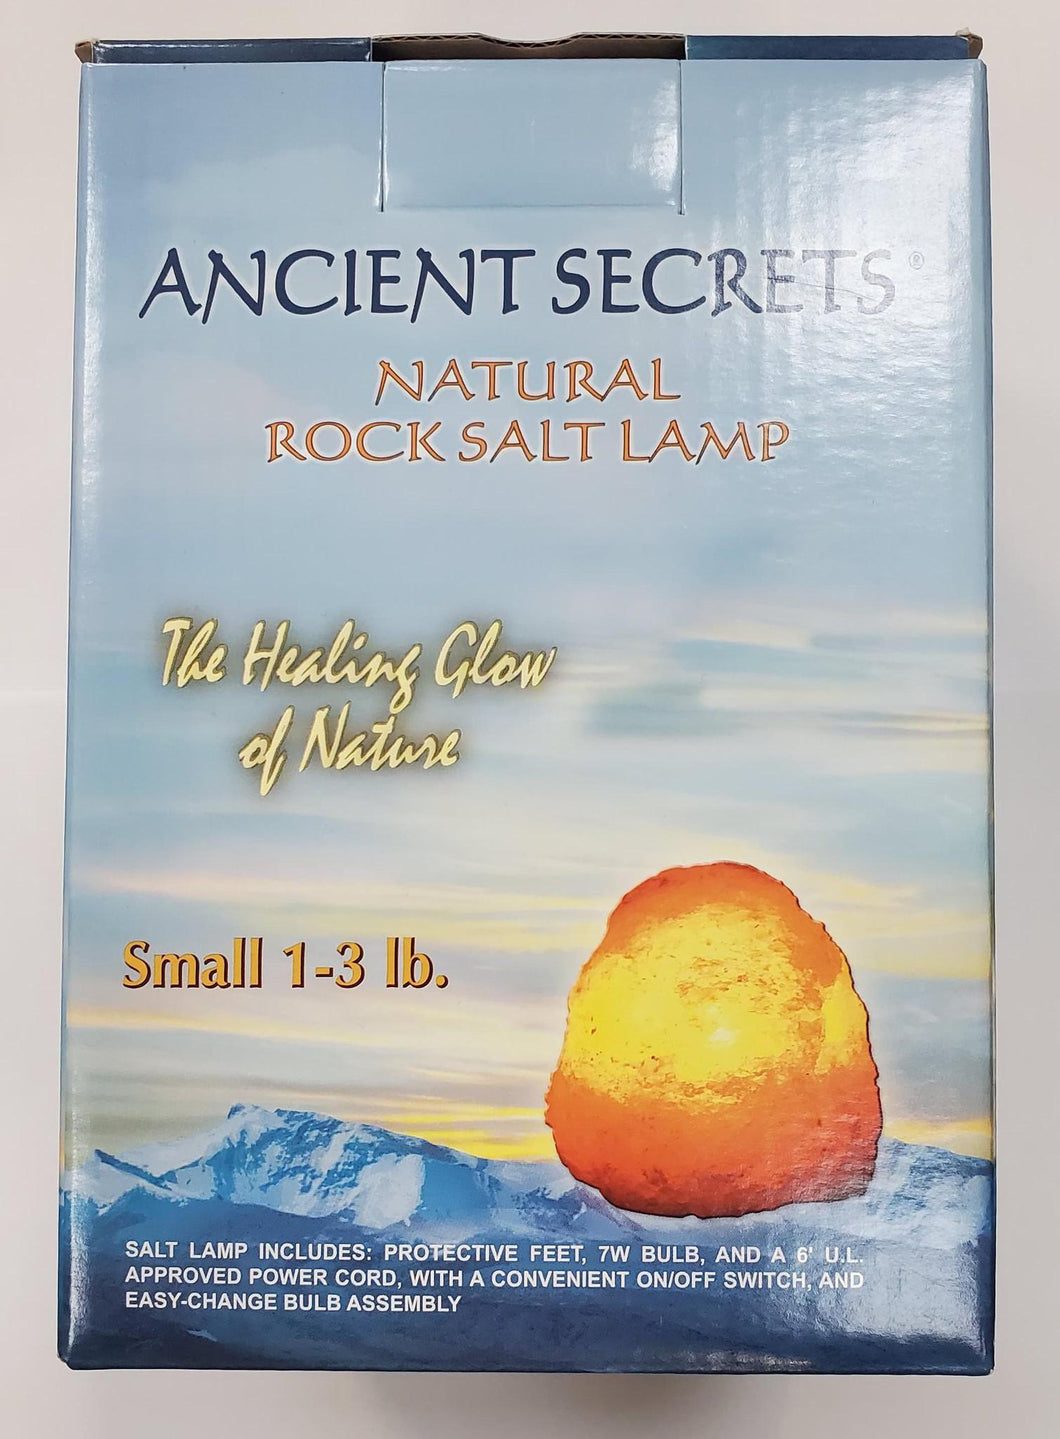 Rock Salt Lamp Small1-3lb - Ancient Secrets